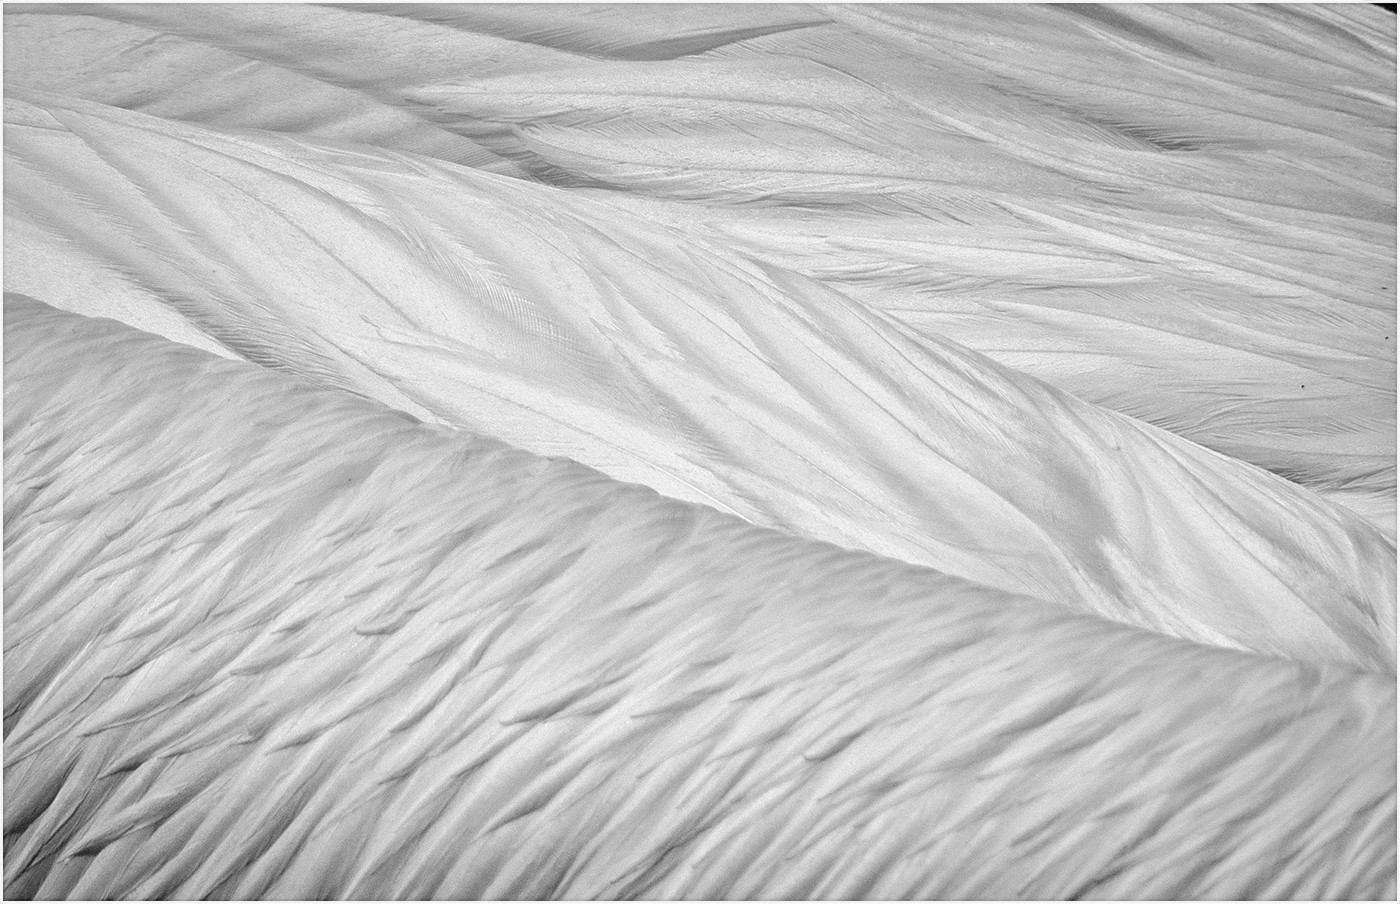 PELICAN FEATHERS by Cathie Agates